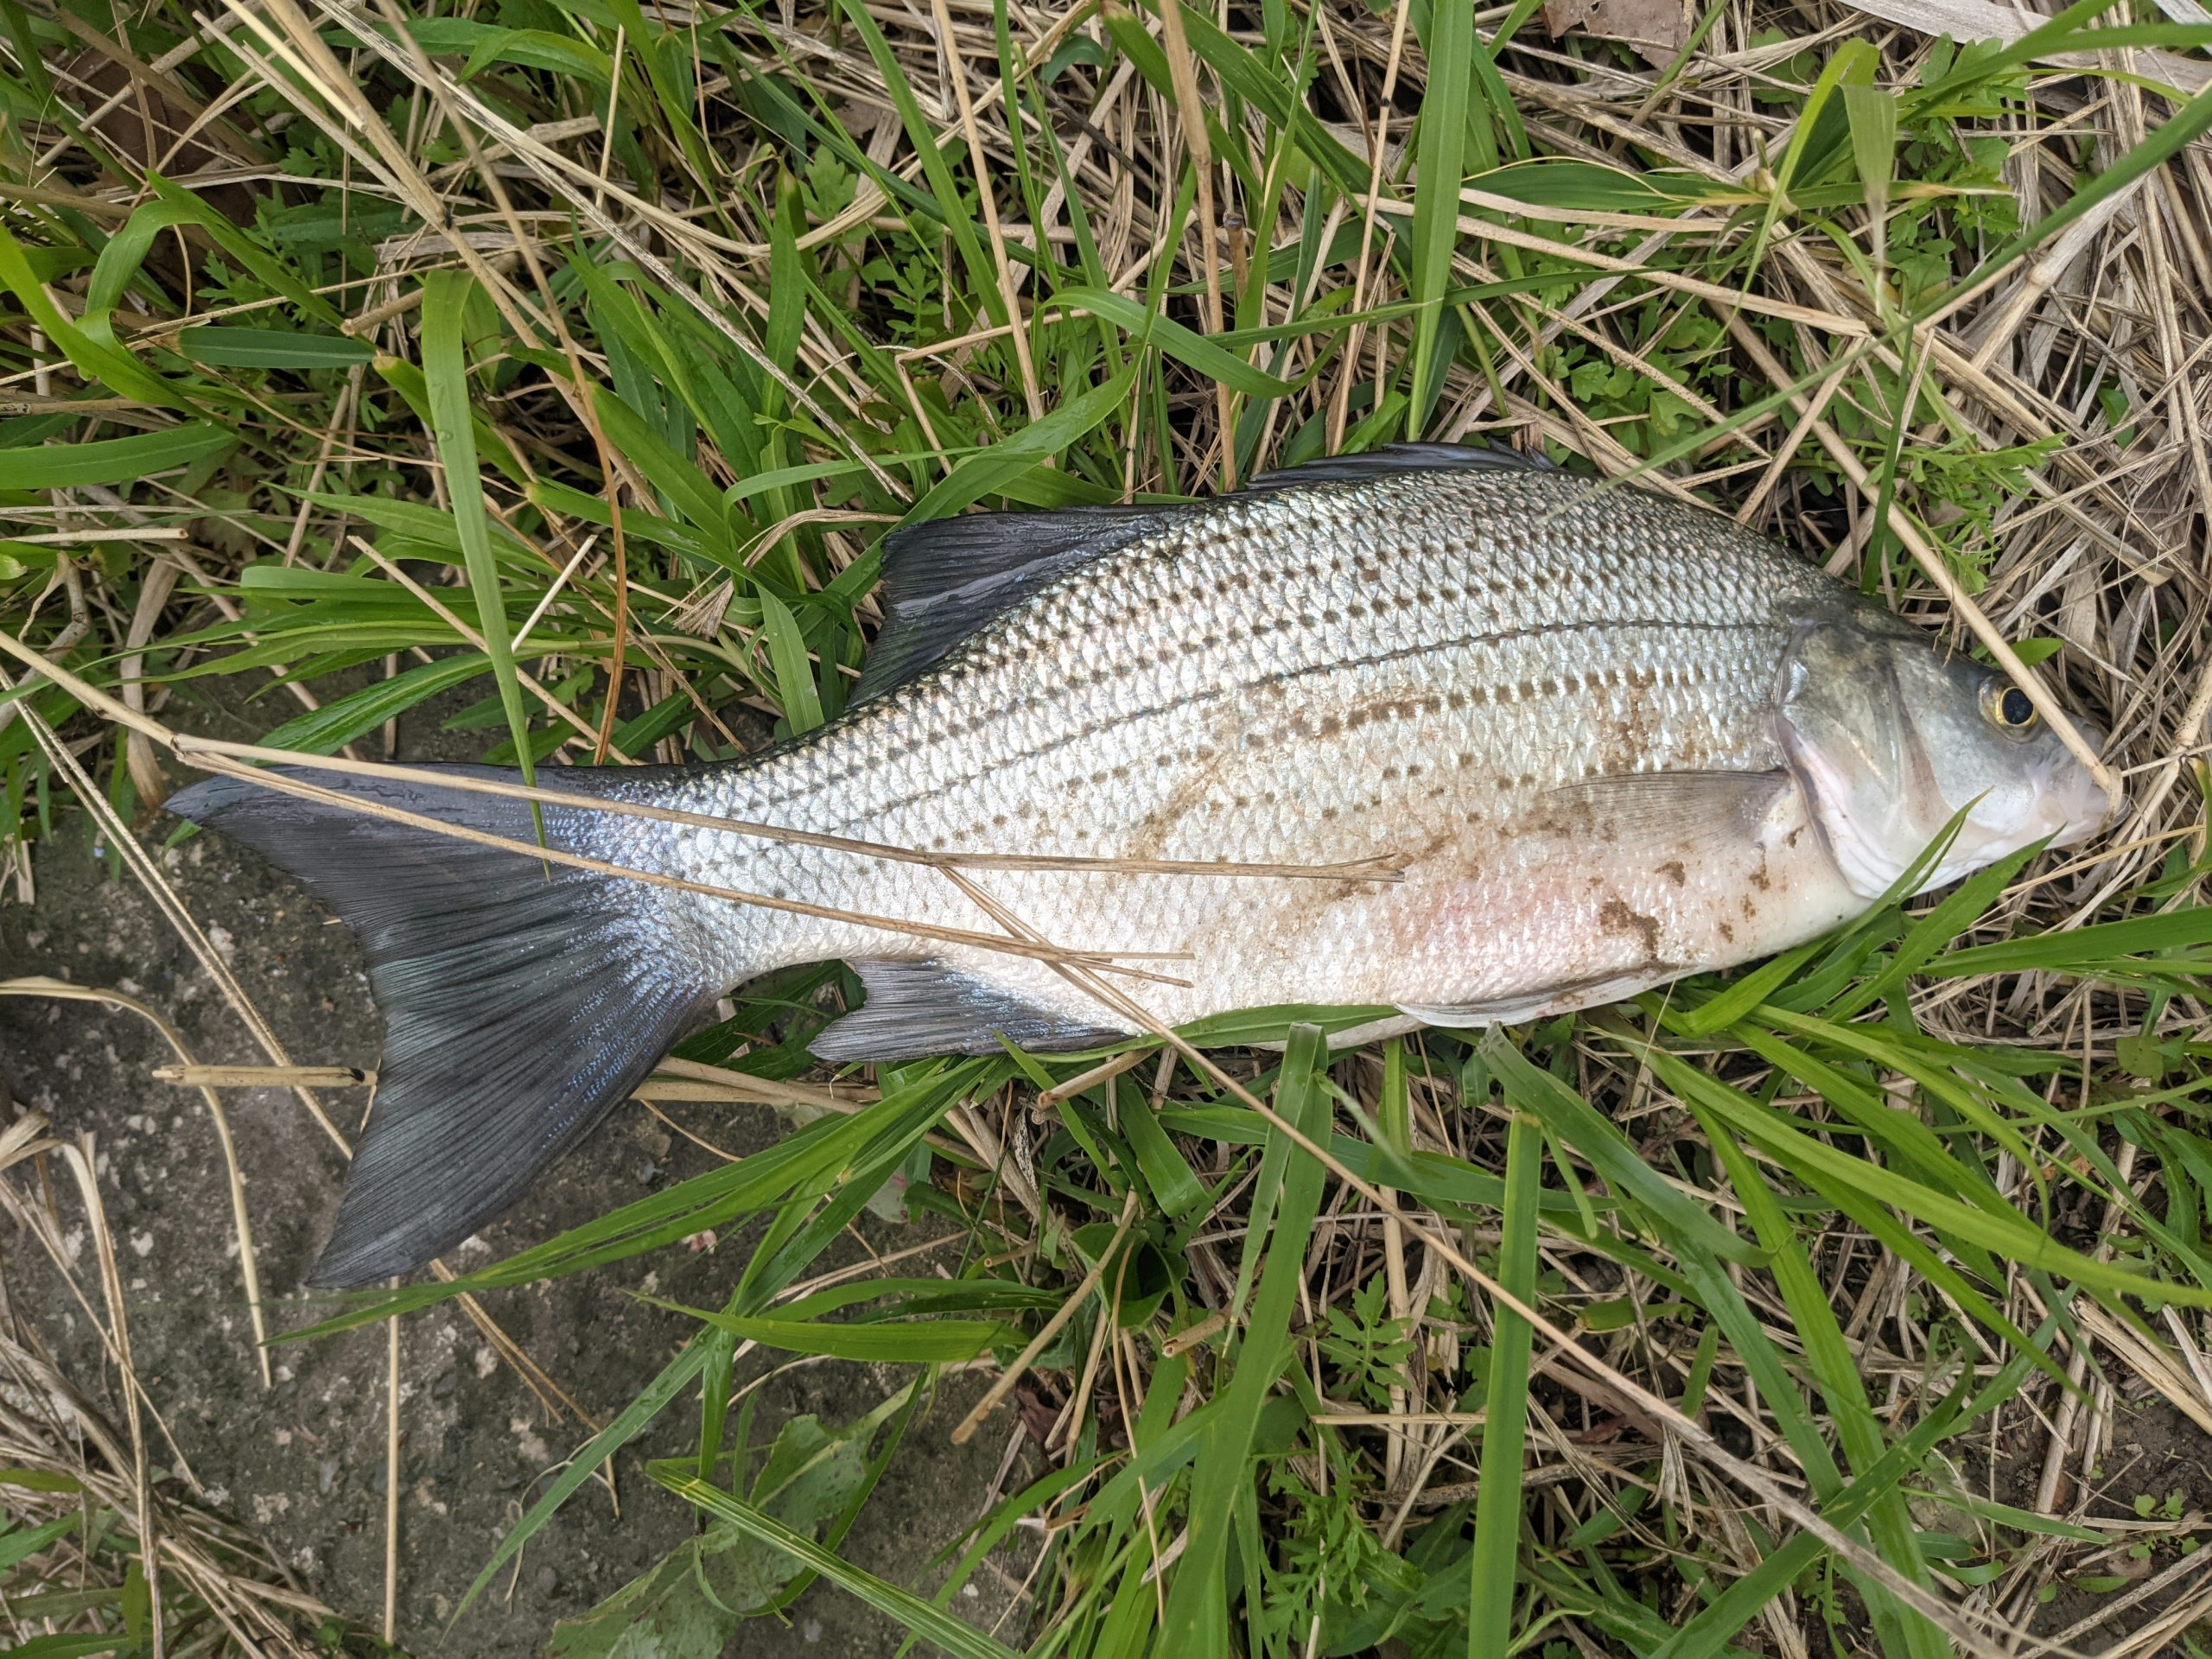 Maumee river Report – May 7 2021- Lots of live bait in stock